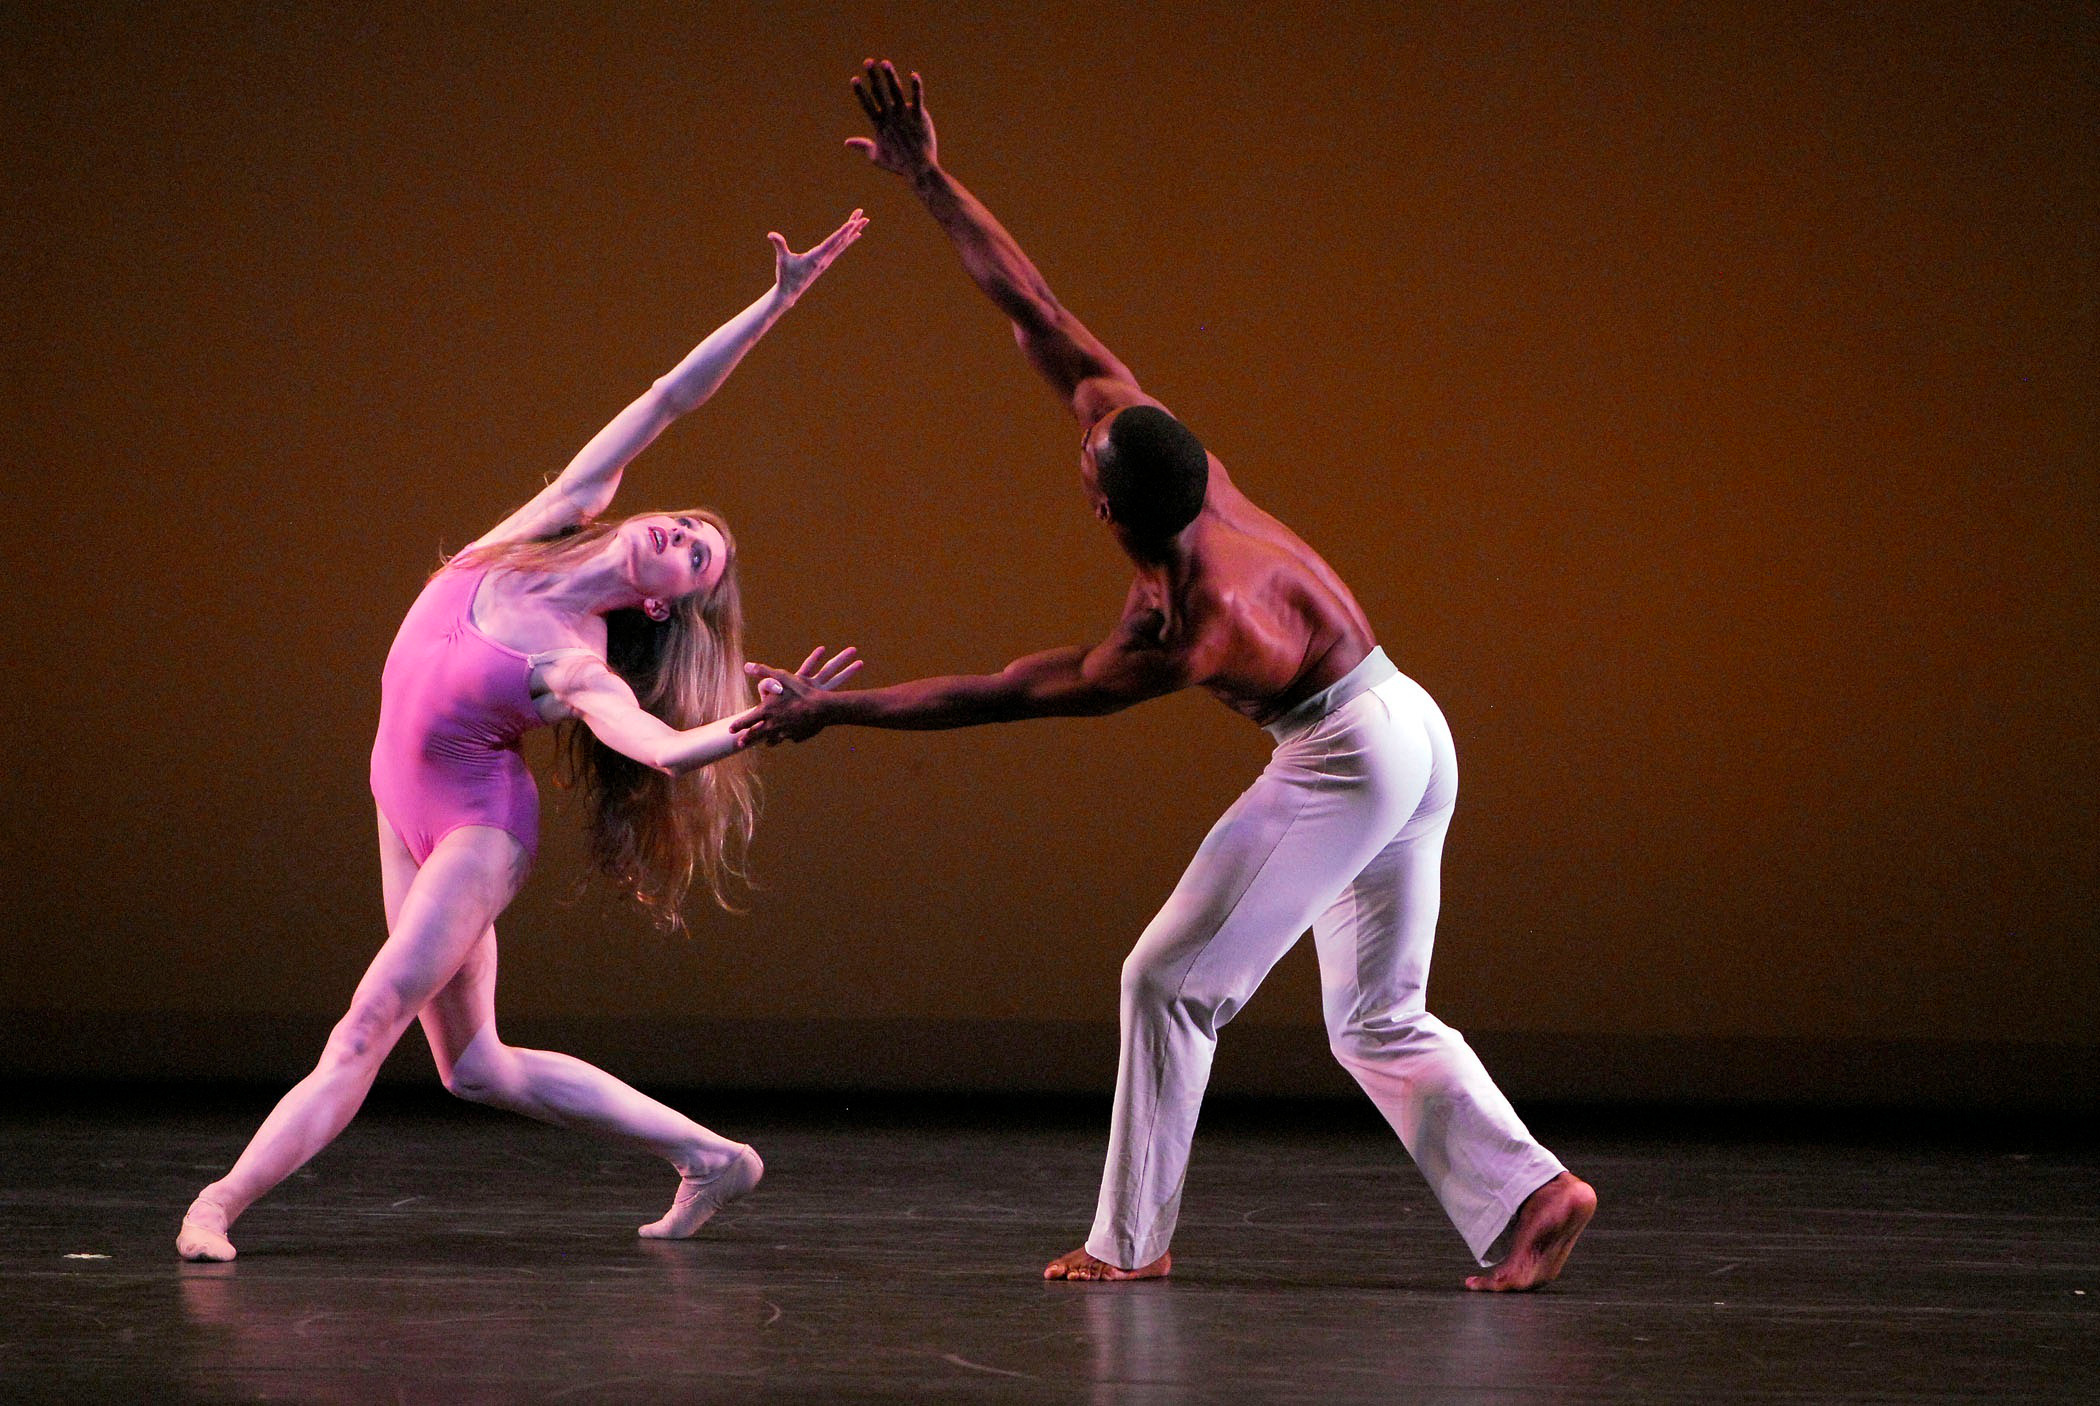 837e6e3cfde Our 4 Favorite Ballet Documentaries on Netflix Right Now - Pointe